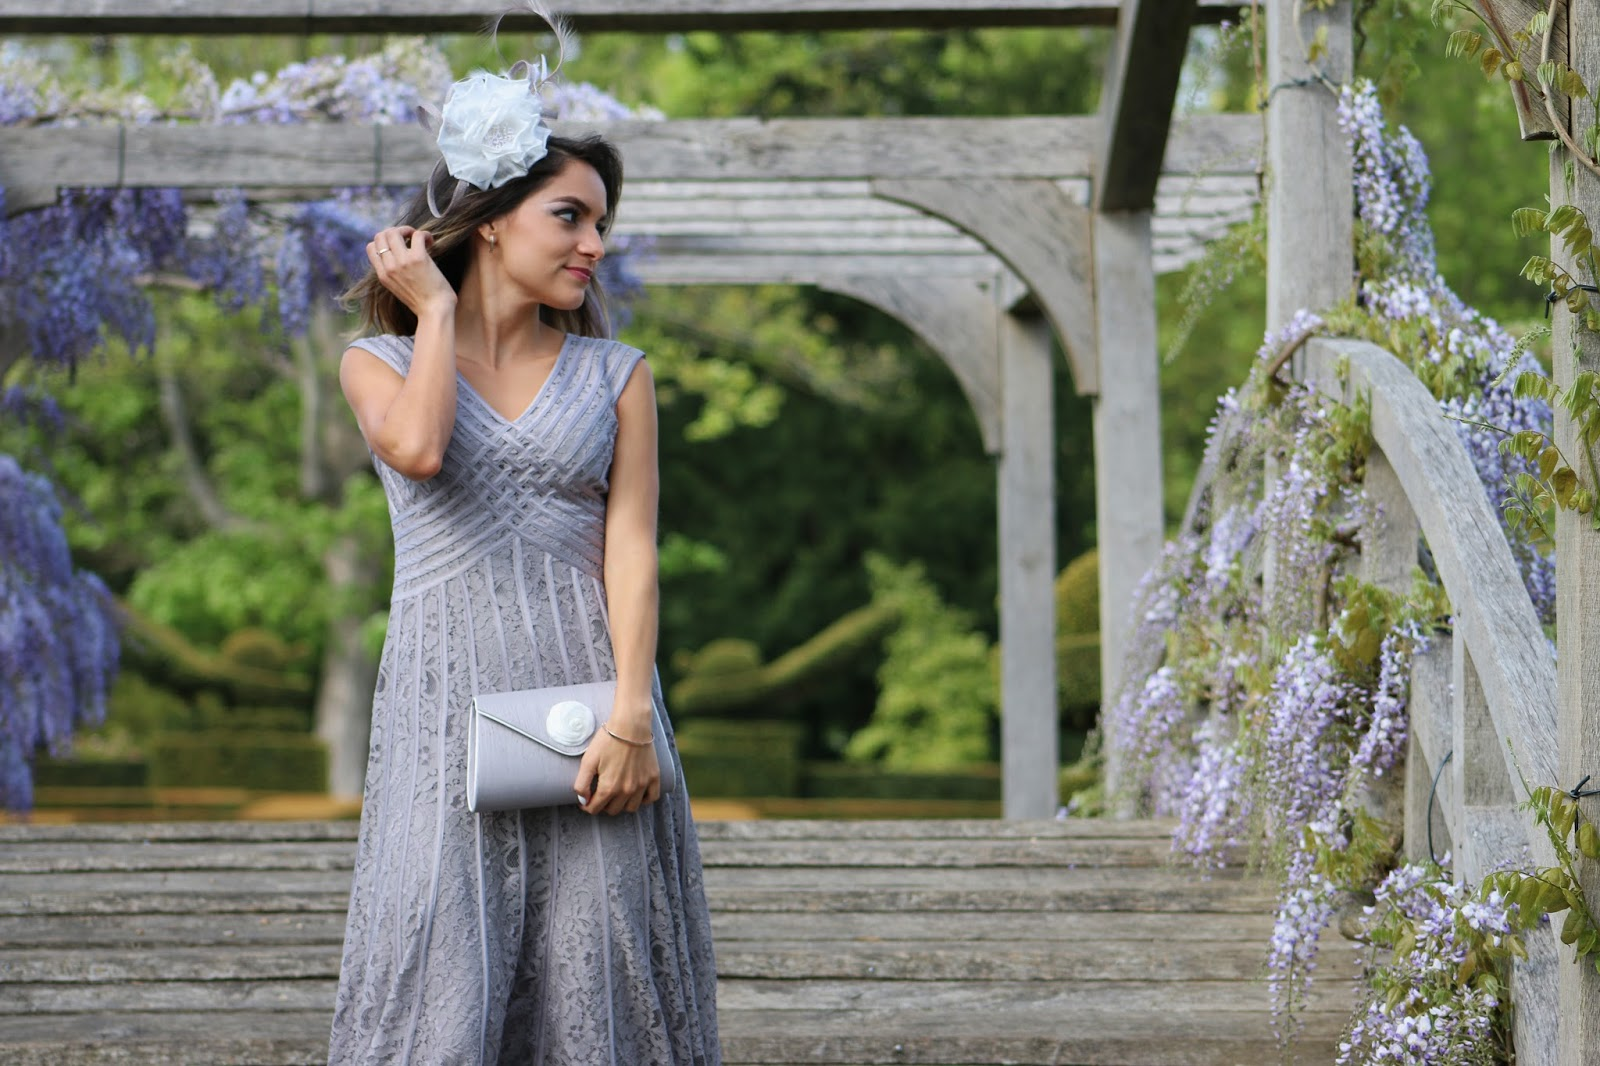 5 TIPS TO ACHIEVE THE PERFECT WEDDING GUEST OUTFIT